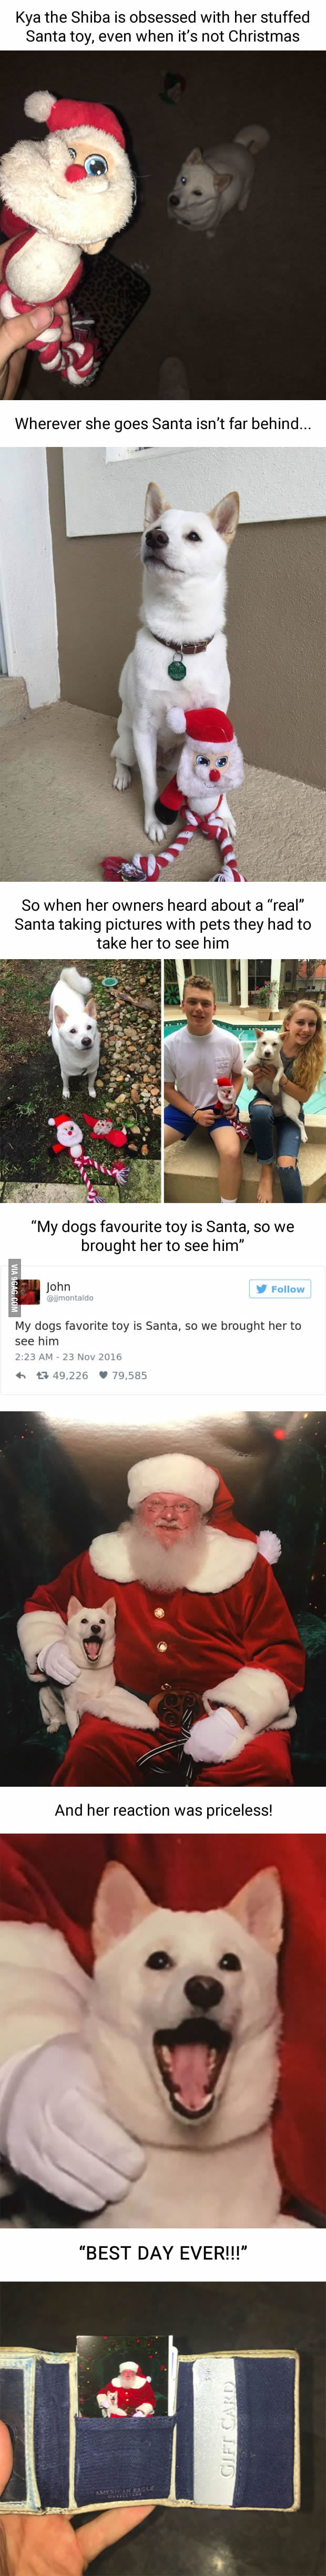 White Doge Obsessed With Stuffed Santa Finally Gets To Meet Her - Dog obsessed with stuffed santa toy gets to meet her idol in real life